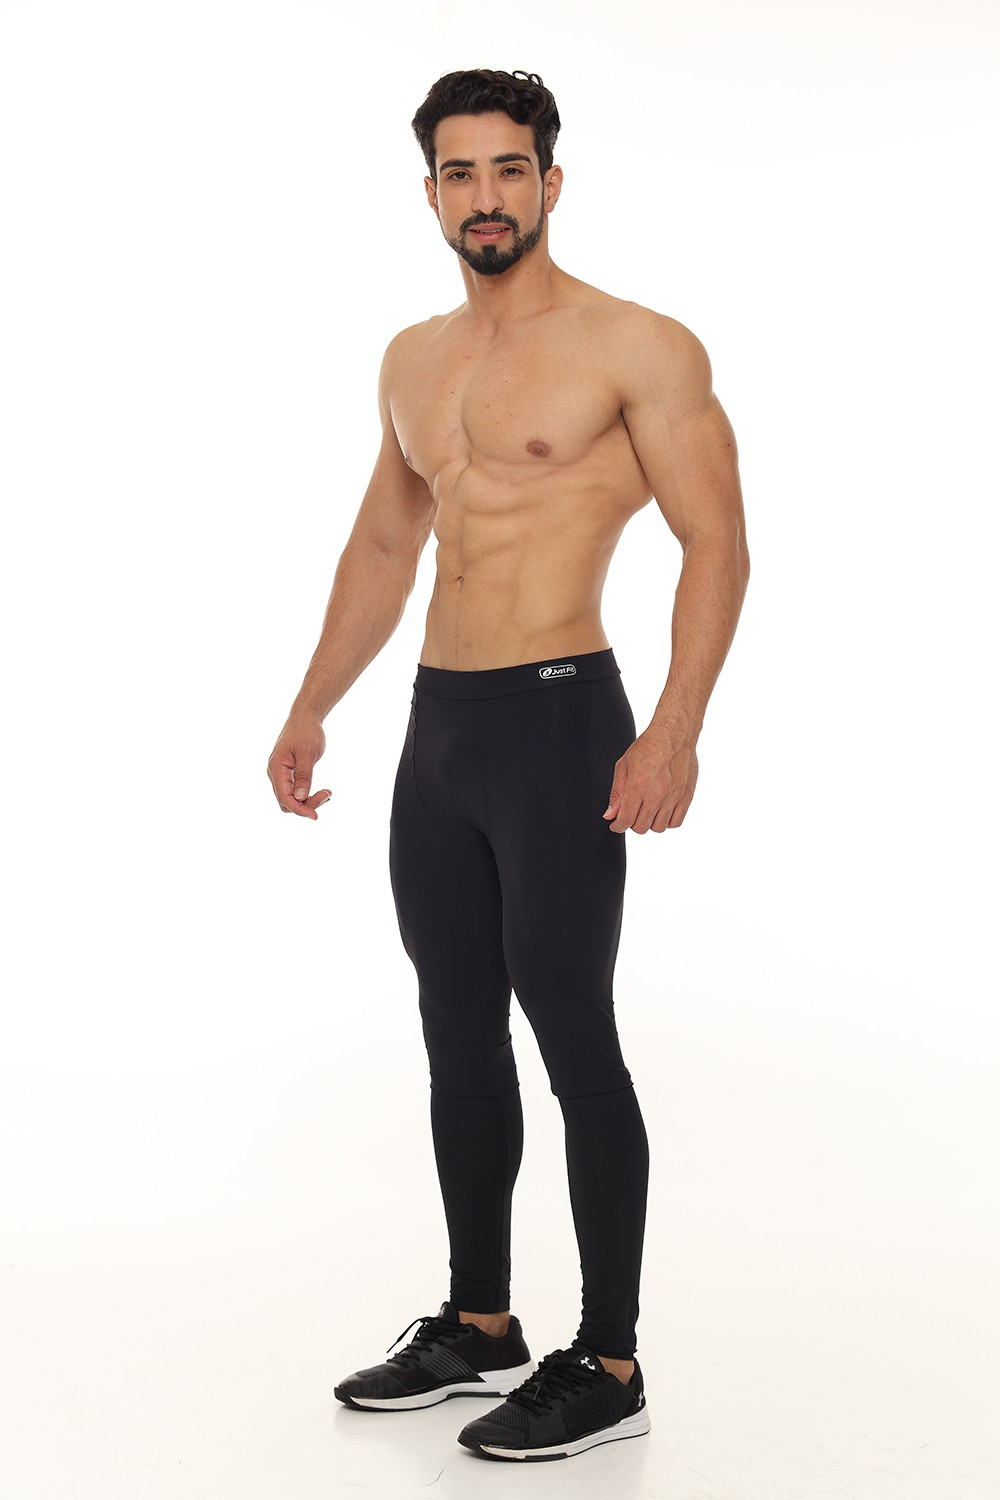 CALÇA LEGGING MASCULINA MAXXI X-RUN JUST FIT - PRETO